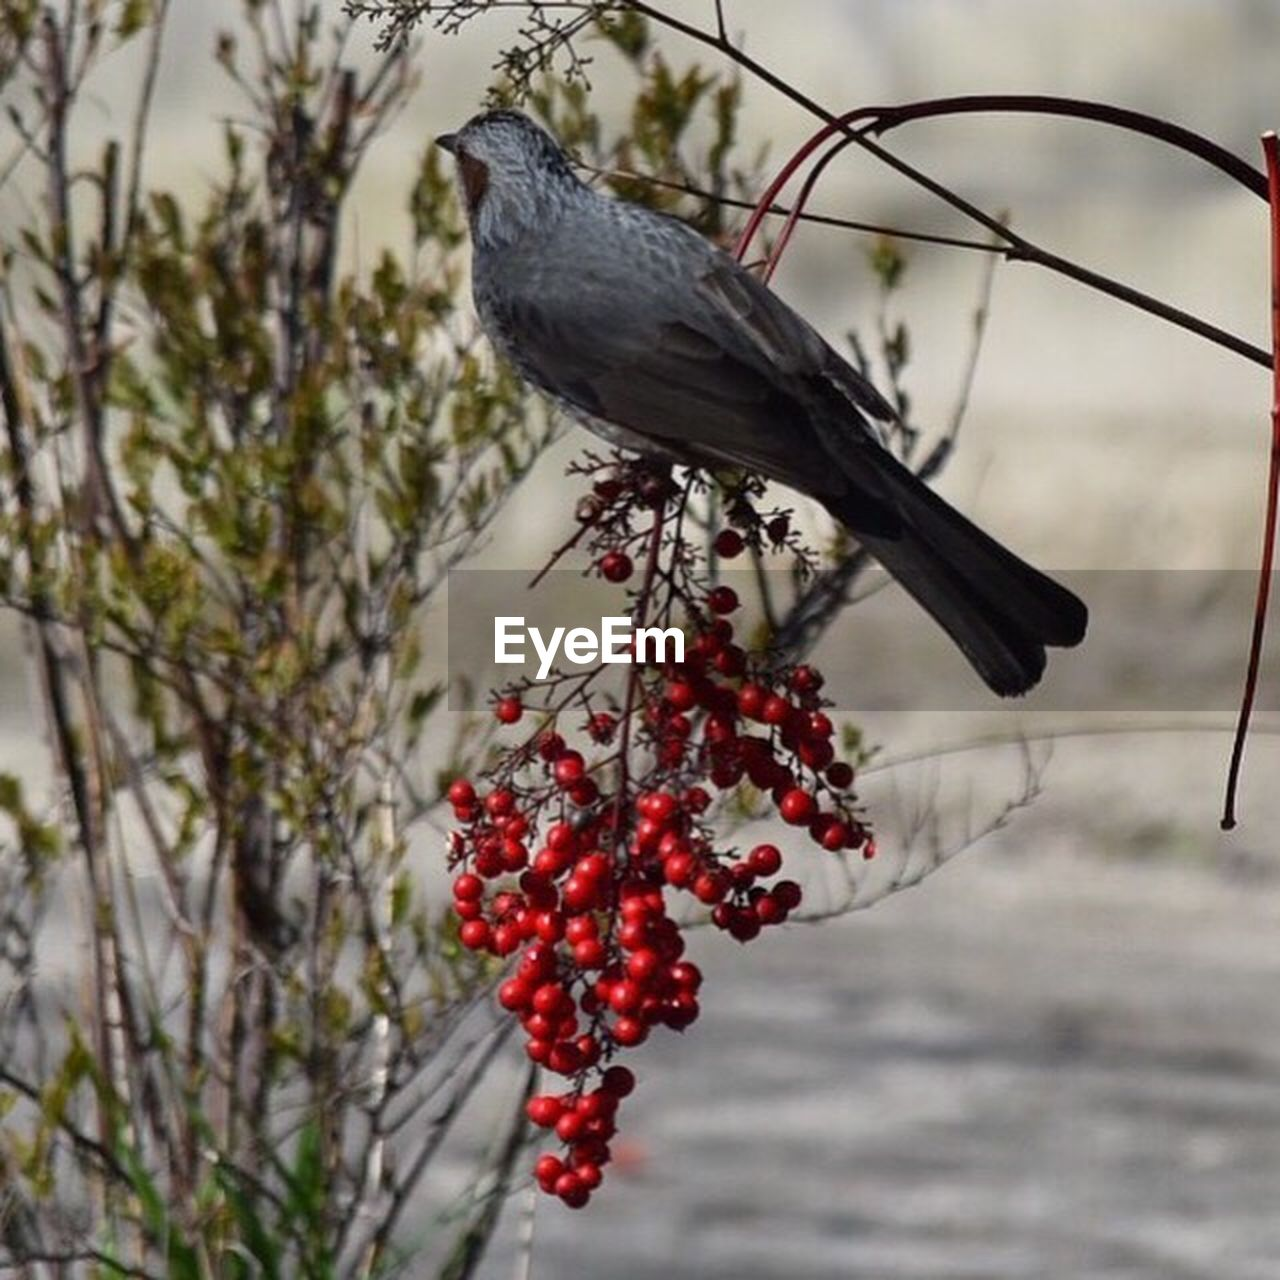 fruit, red, outdoors, day, focus on foreground, tree, one animal, nature, food and drink, animal themes, no people, bird, animals in the wild, branch, perching, close-up, beauty in nature, food, freshness